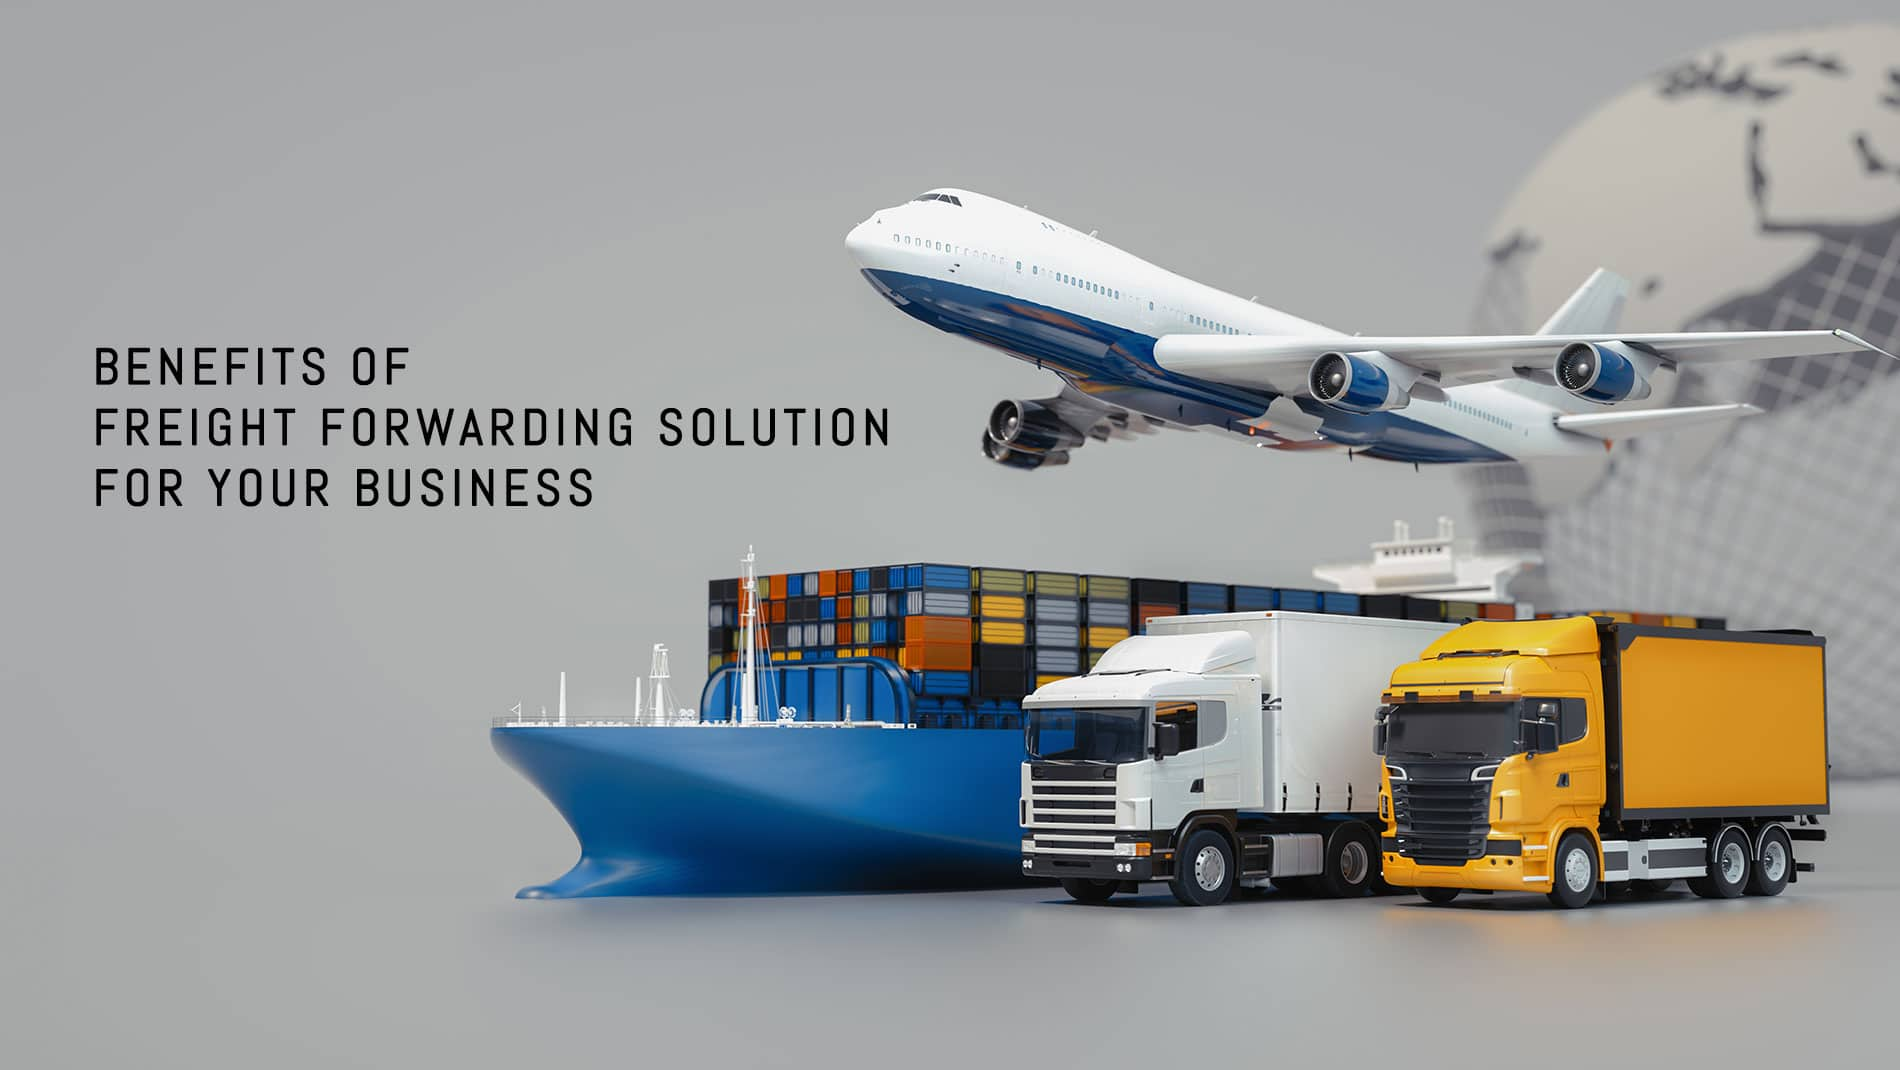 Benefits of freight forwarding solution for business